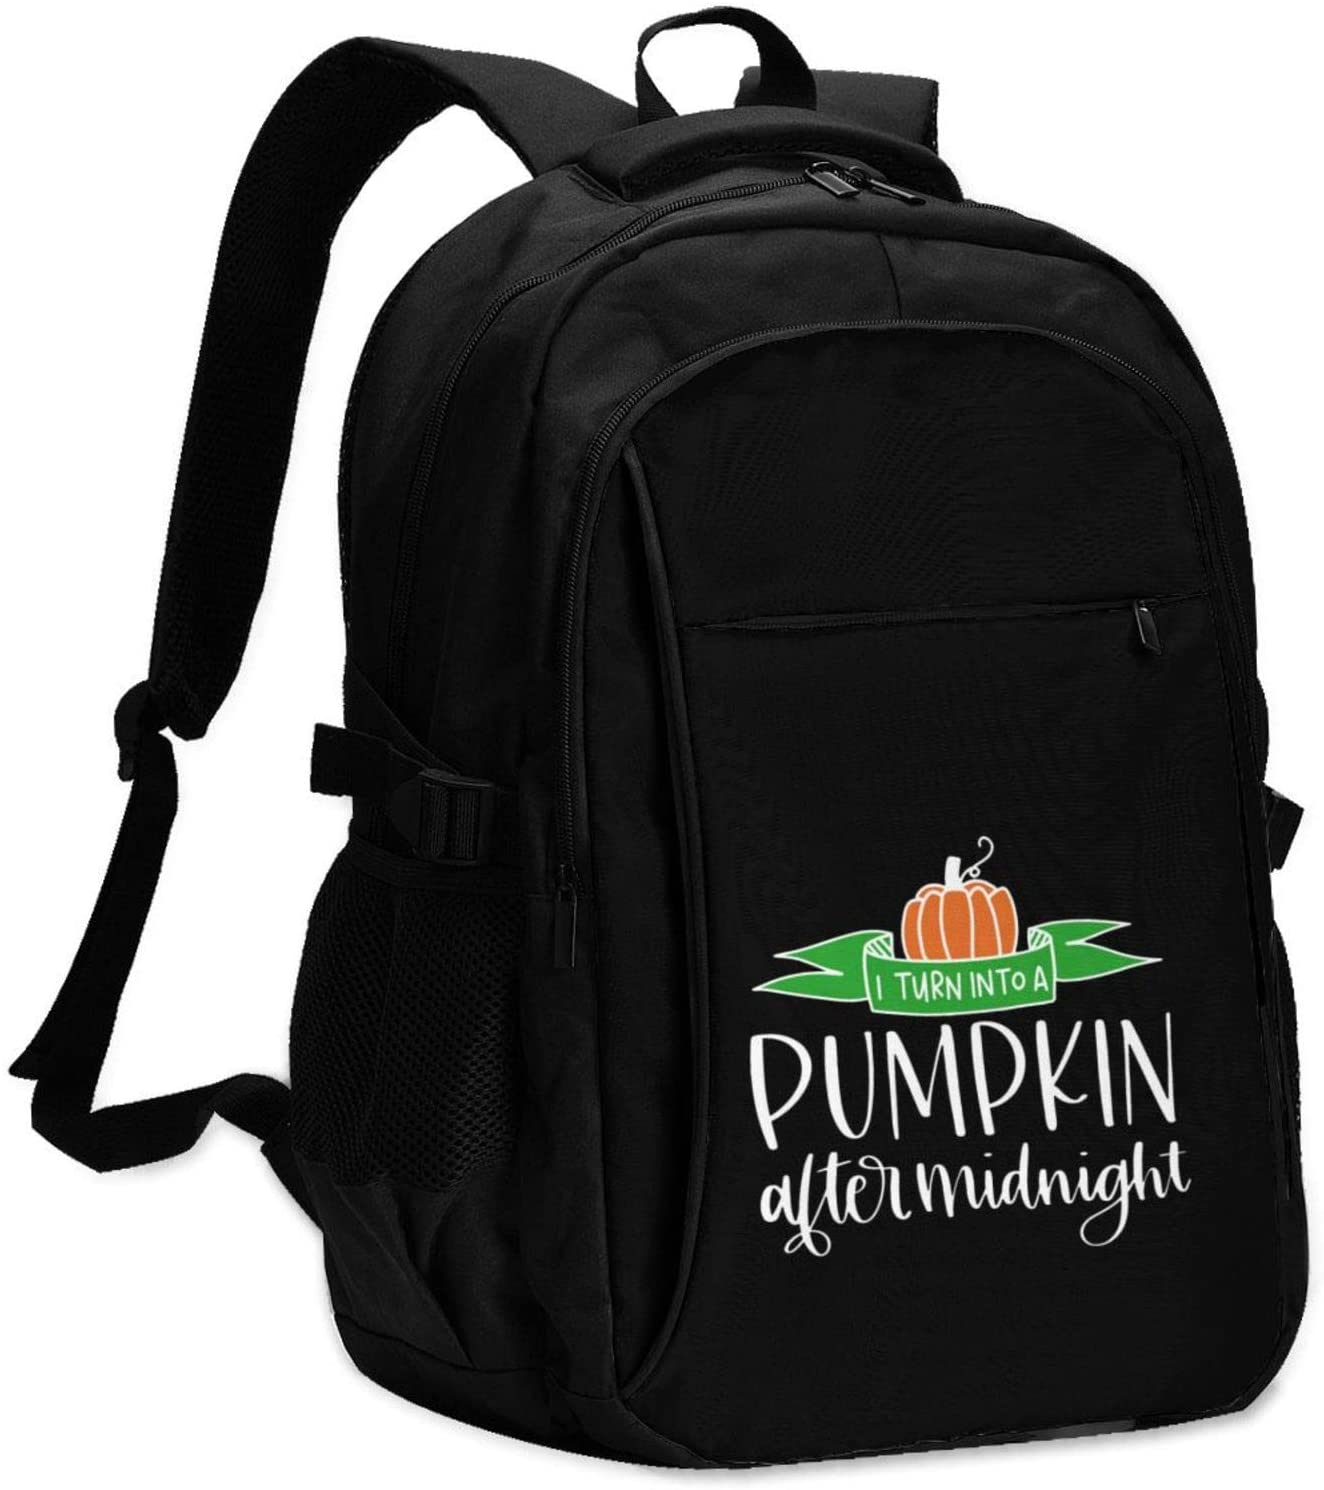 High Capacity Travel Laptop Water Resistant Anti-Theft Backpacks with USB Charging Port and Lock for Men Women College School Student Casual Hiking W/Print I Become A Pumpkin Pattern